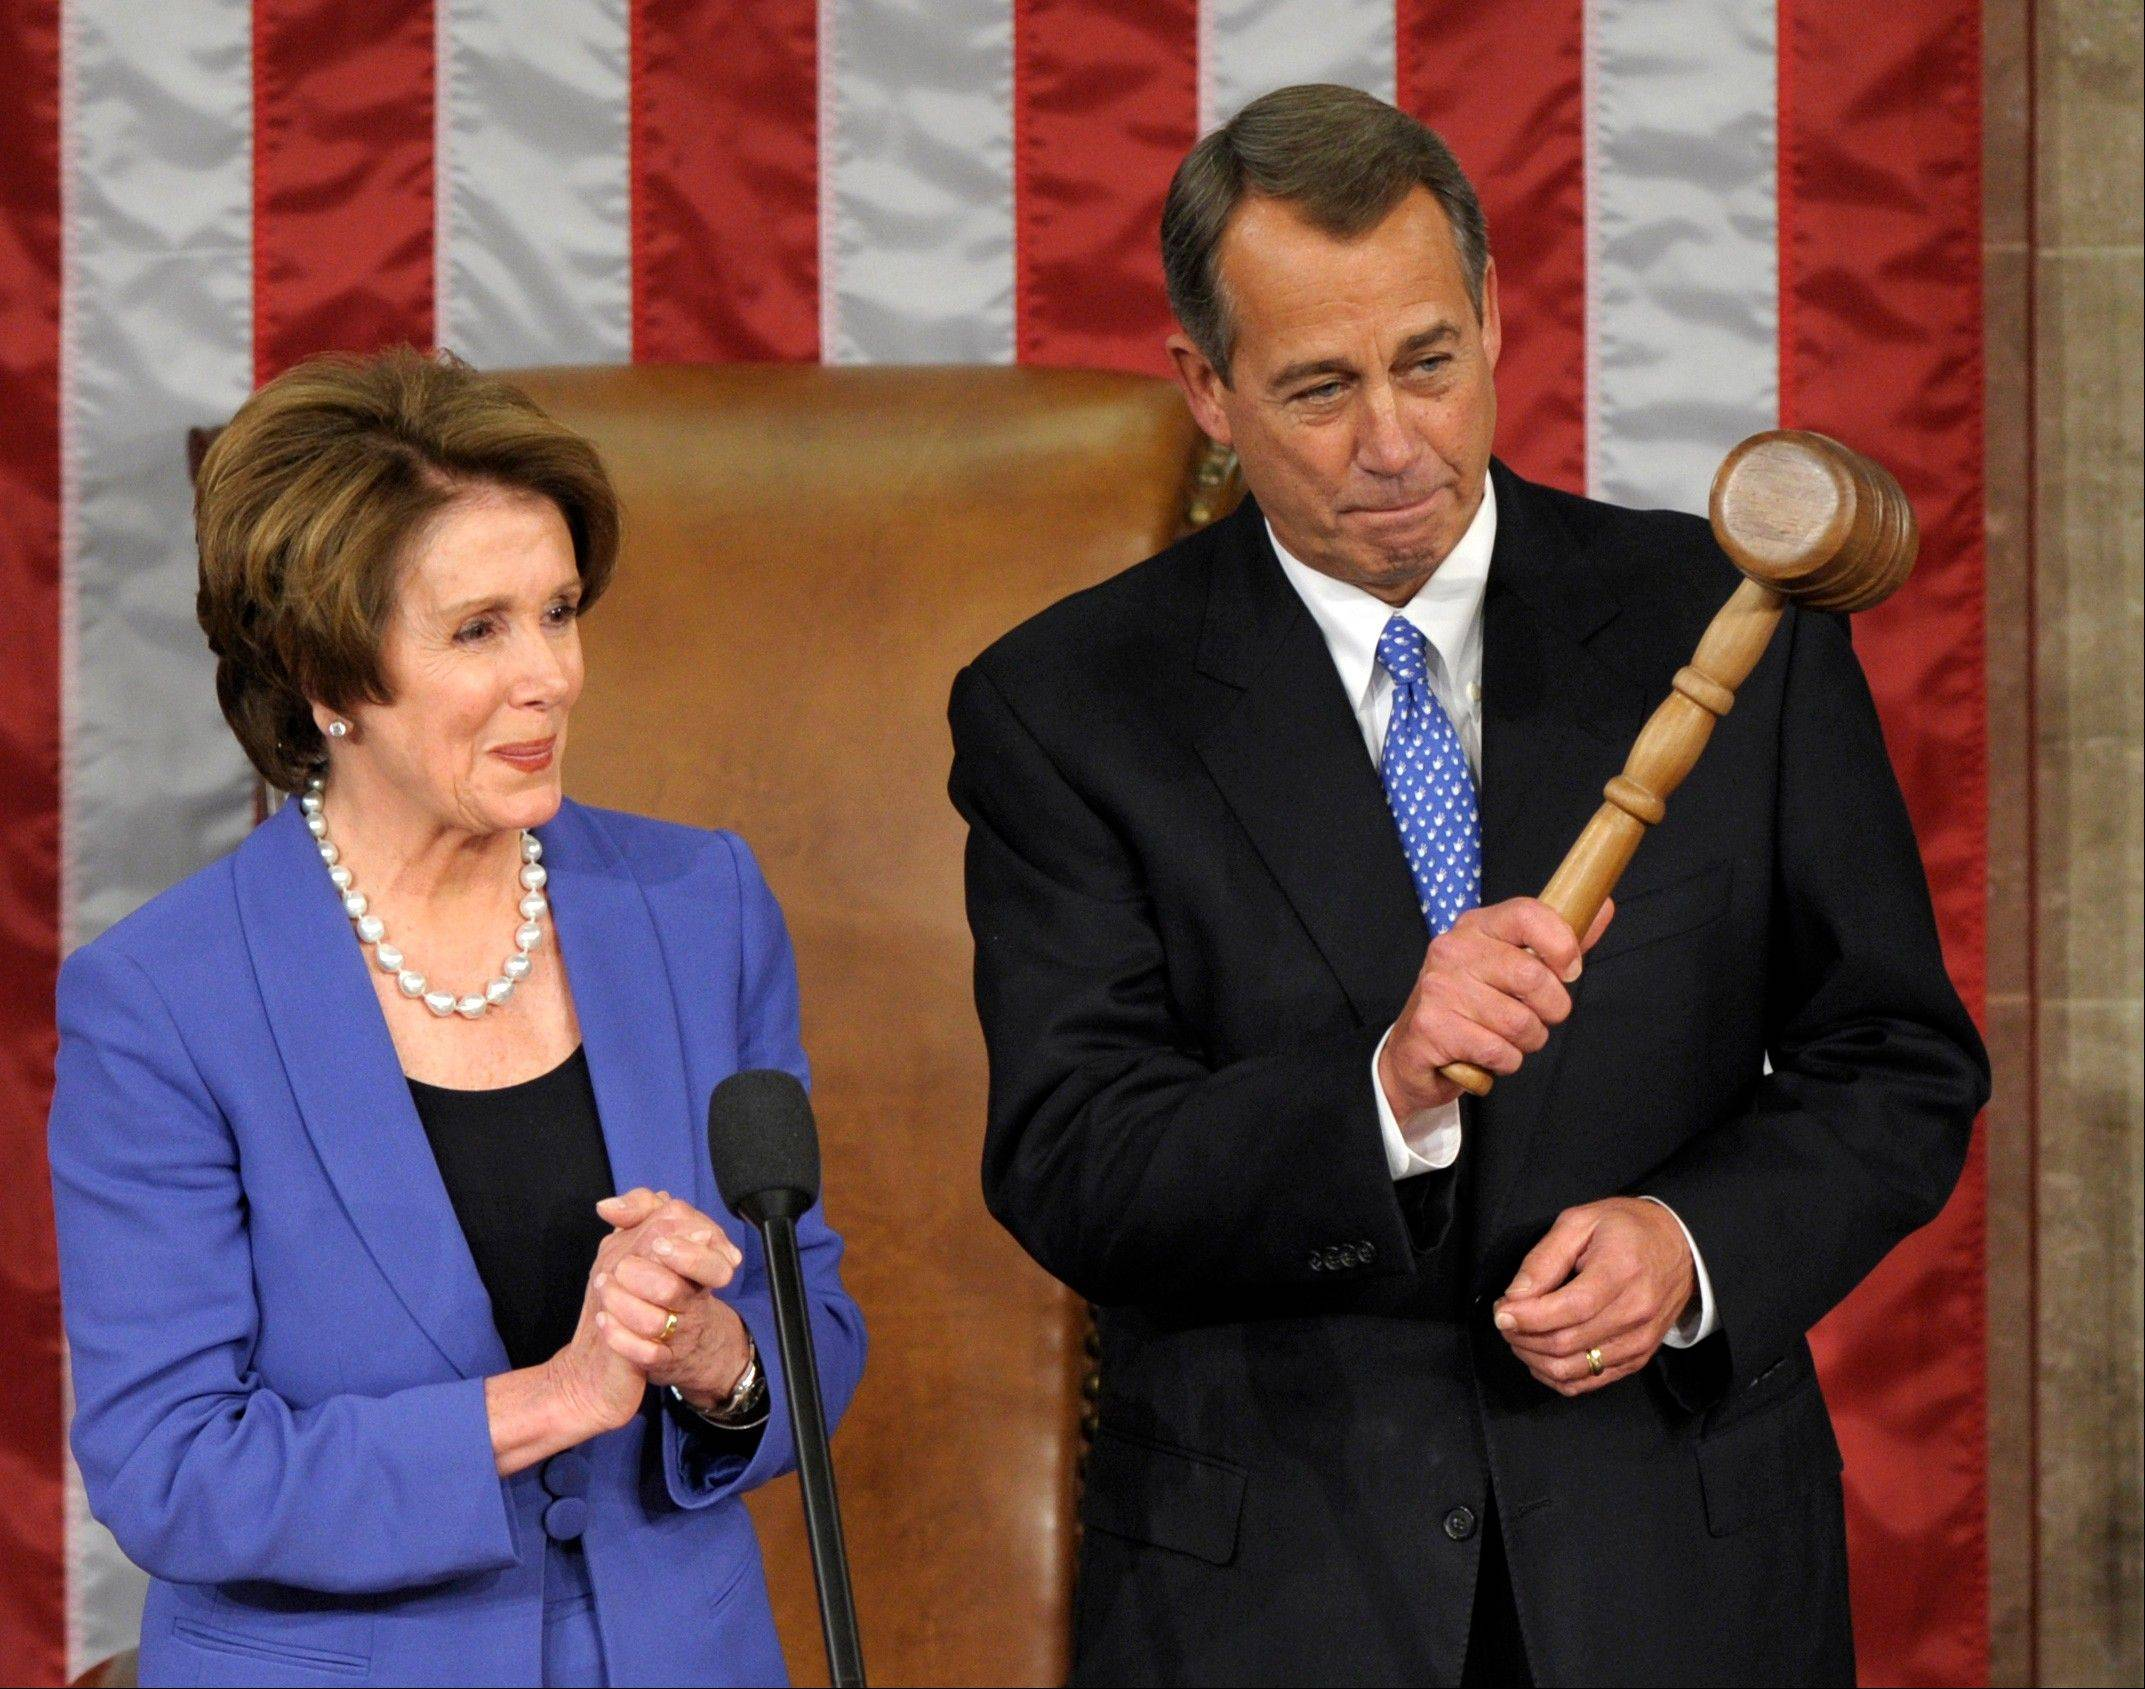 House Minority Leader Nancy Pelosi of California applauds after handing the gavel to House Speaker John Boehner of Ohio, who was re-elected as House Speaker of the 113th Congress on Thursday.